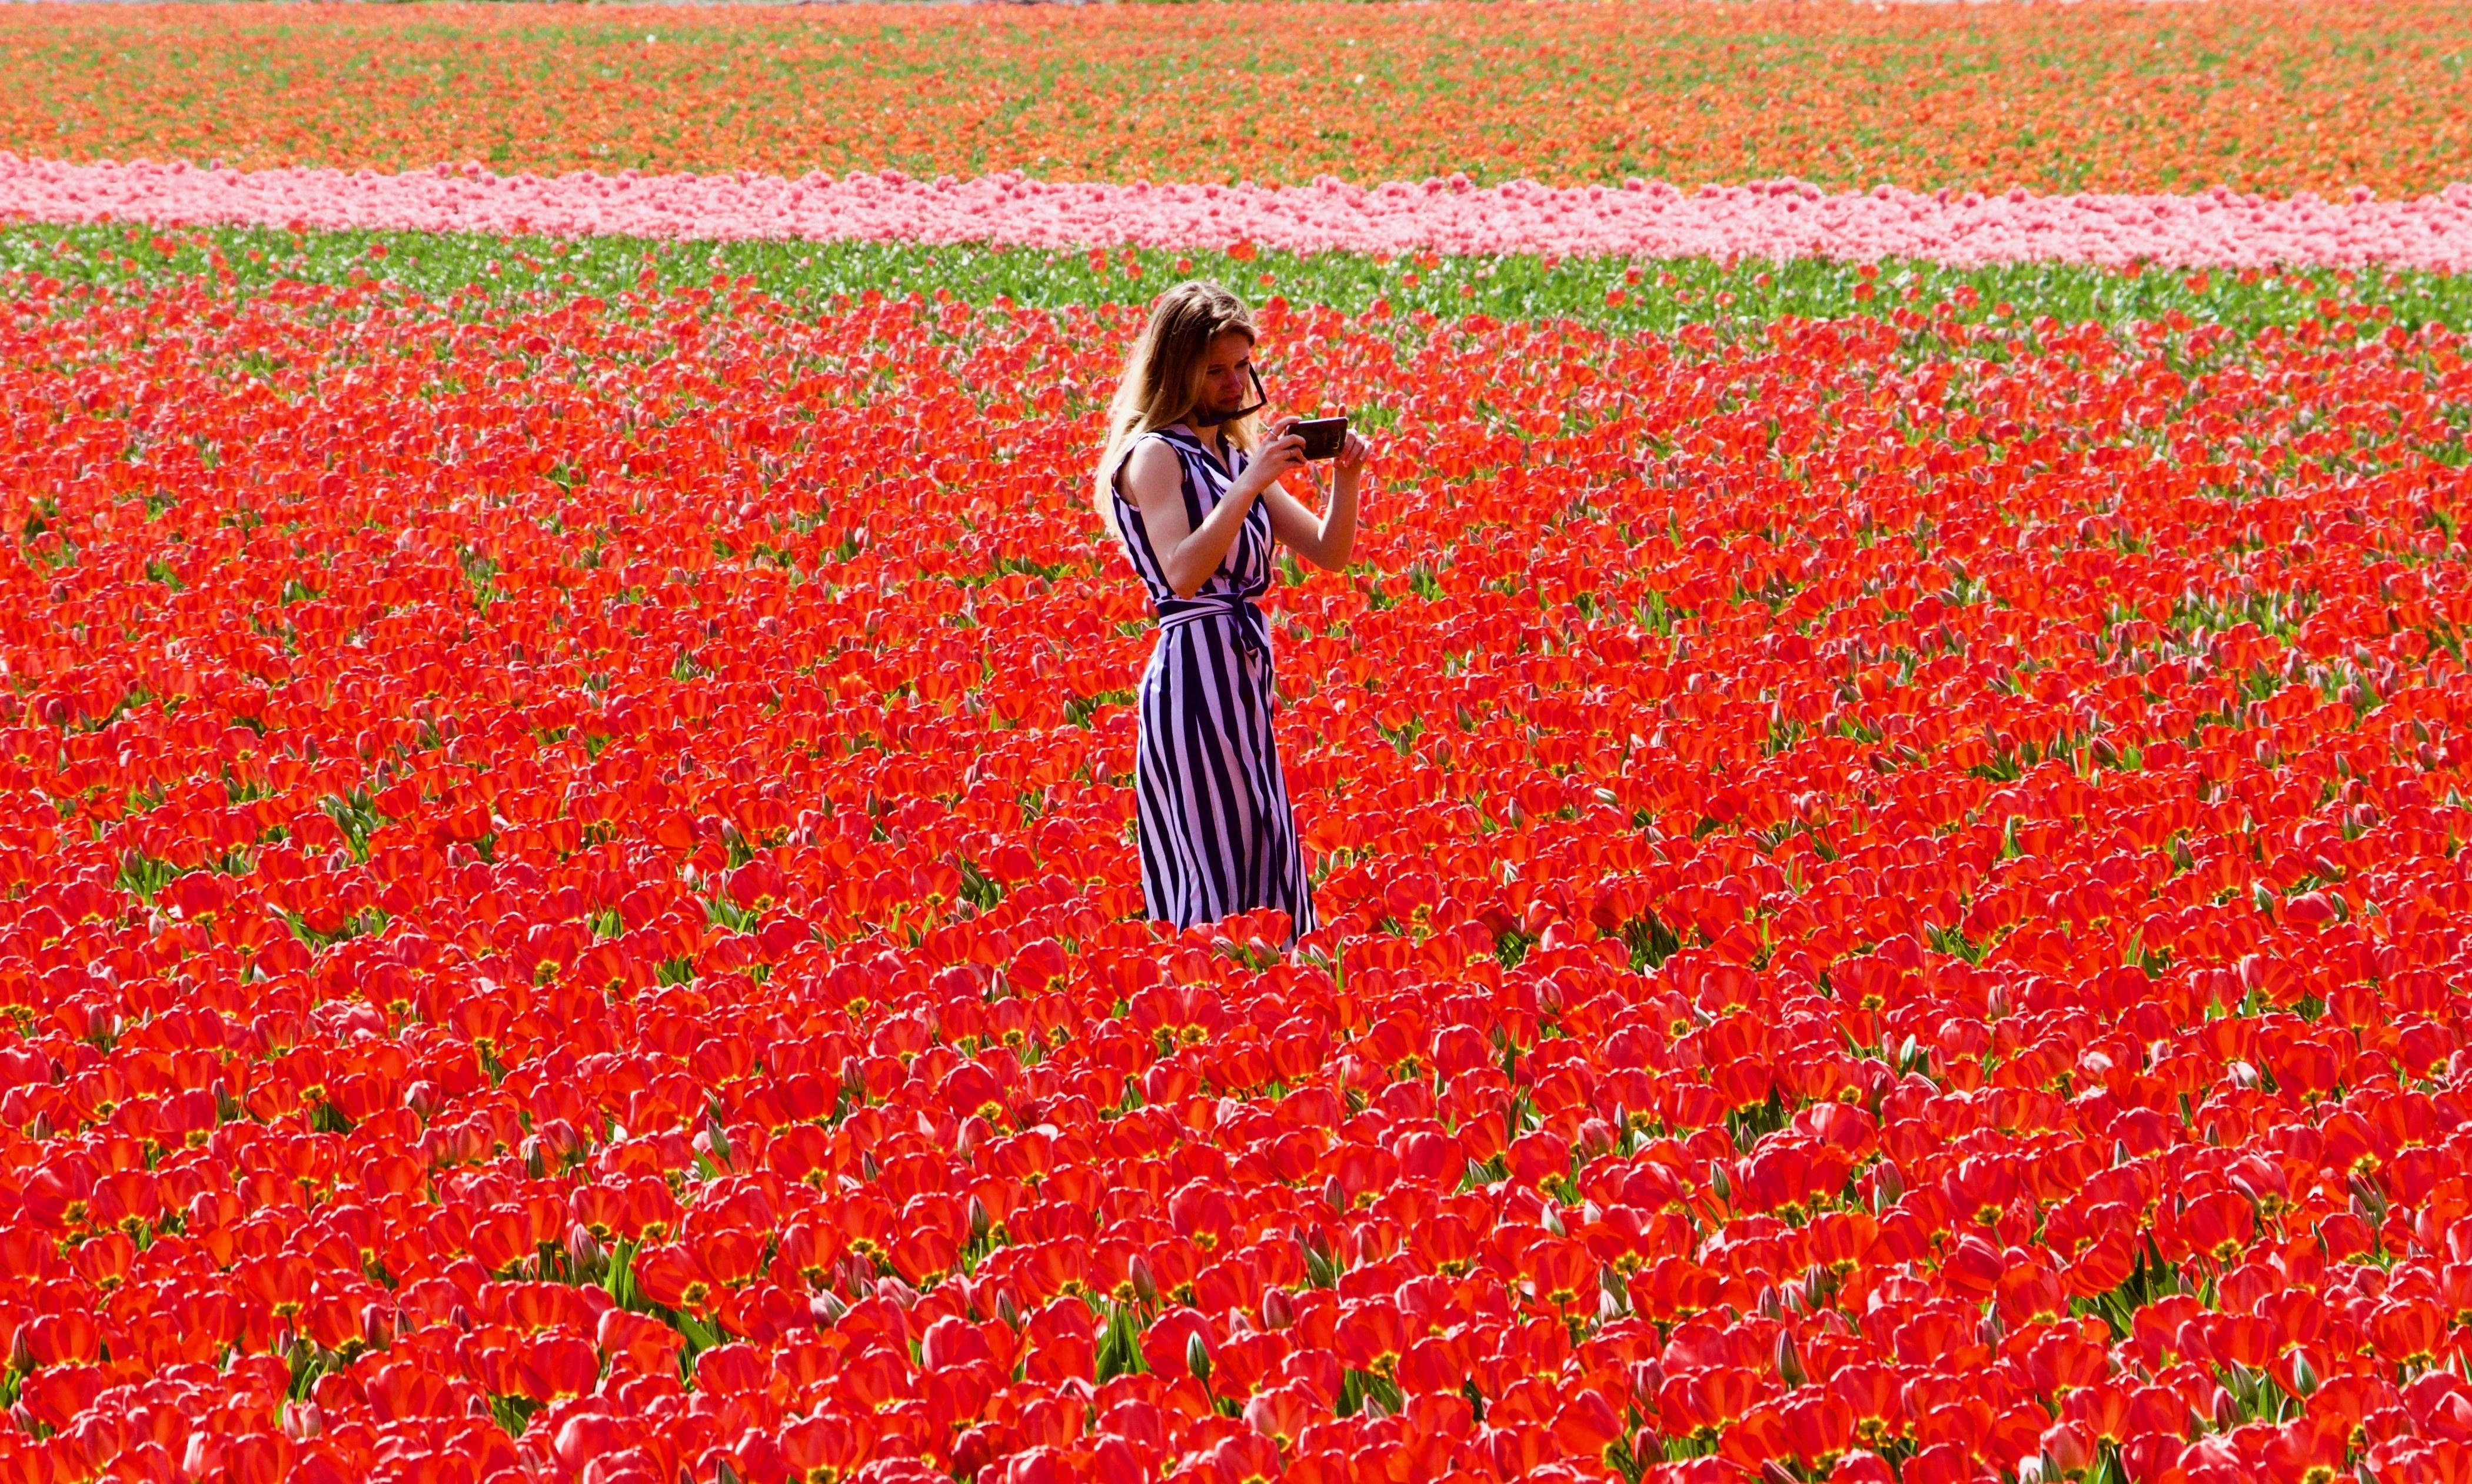 Dutch fence off tulip fields to stop selfie-takers crushing flowers